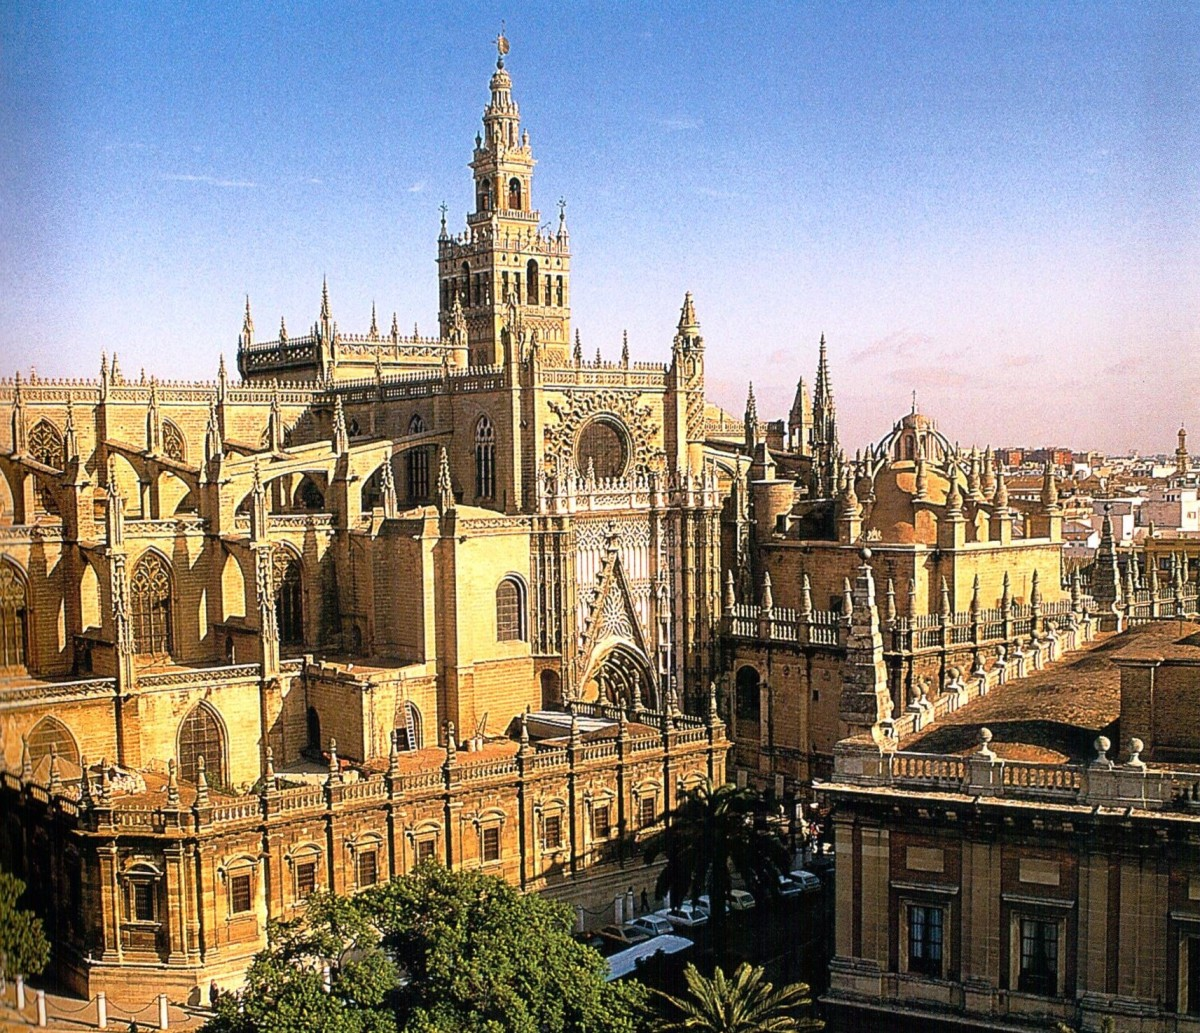 Twelve Treasures of Spain - Seville Cathedral